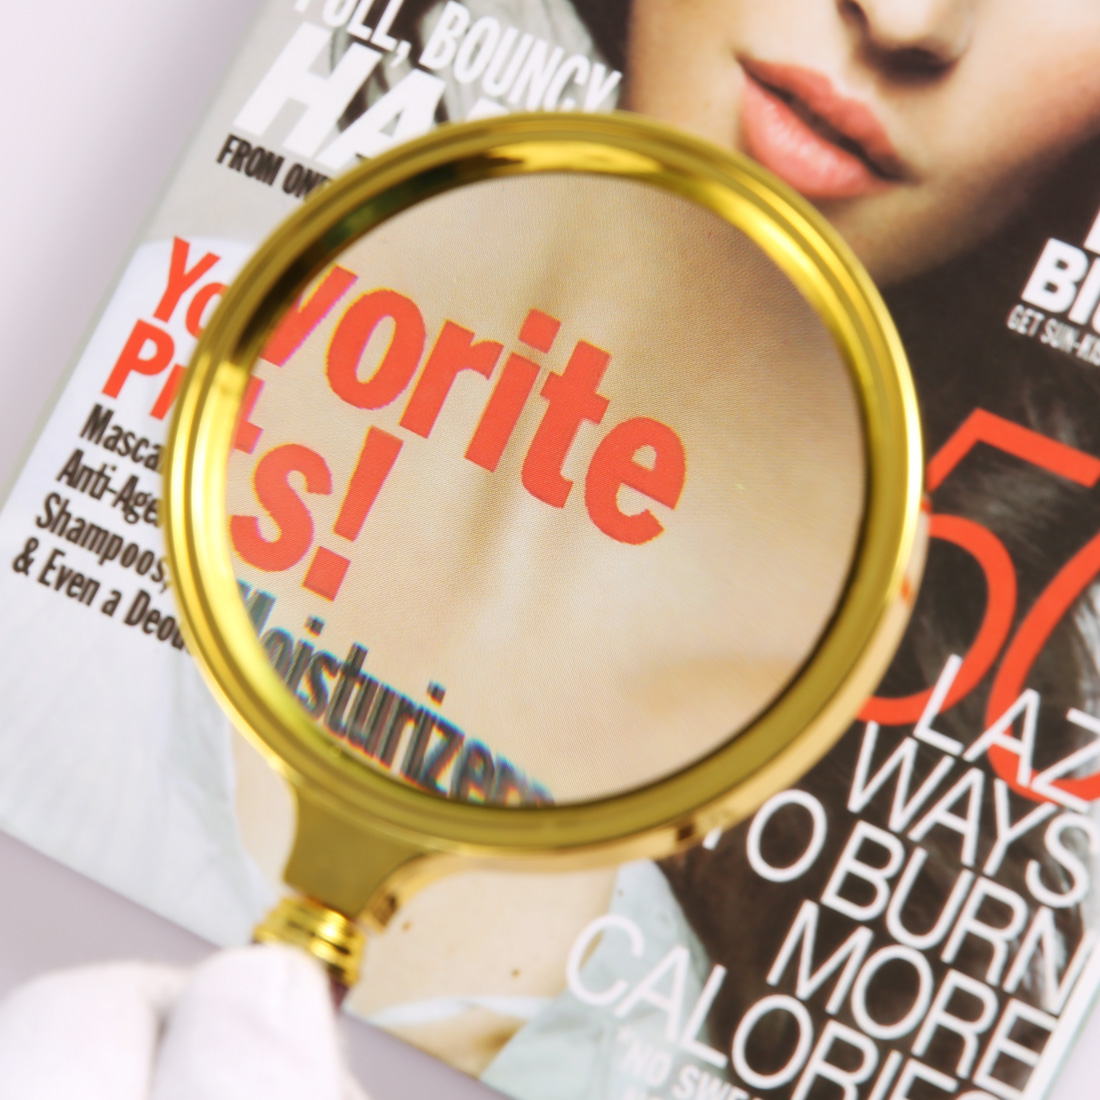 10X /15X Portable Magnifying Glass Handheld Magnifier High Definition Reading Eye Loupe Magnifying Glass Reading Jewelry